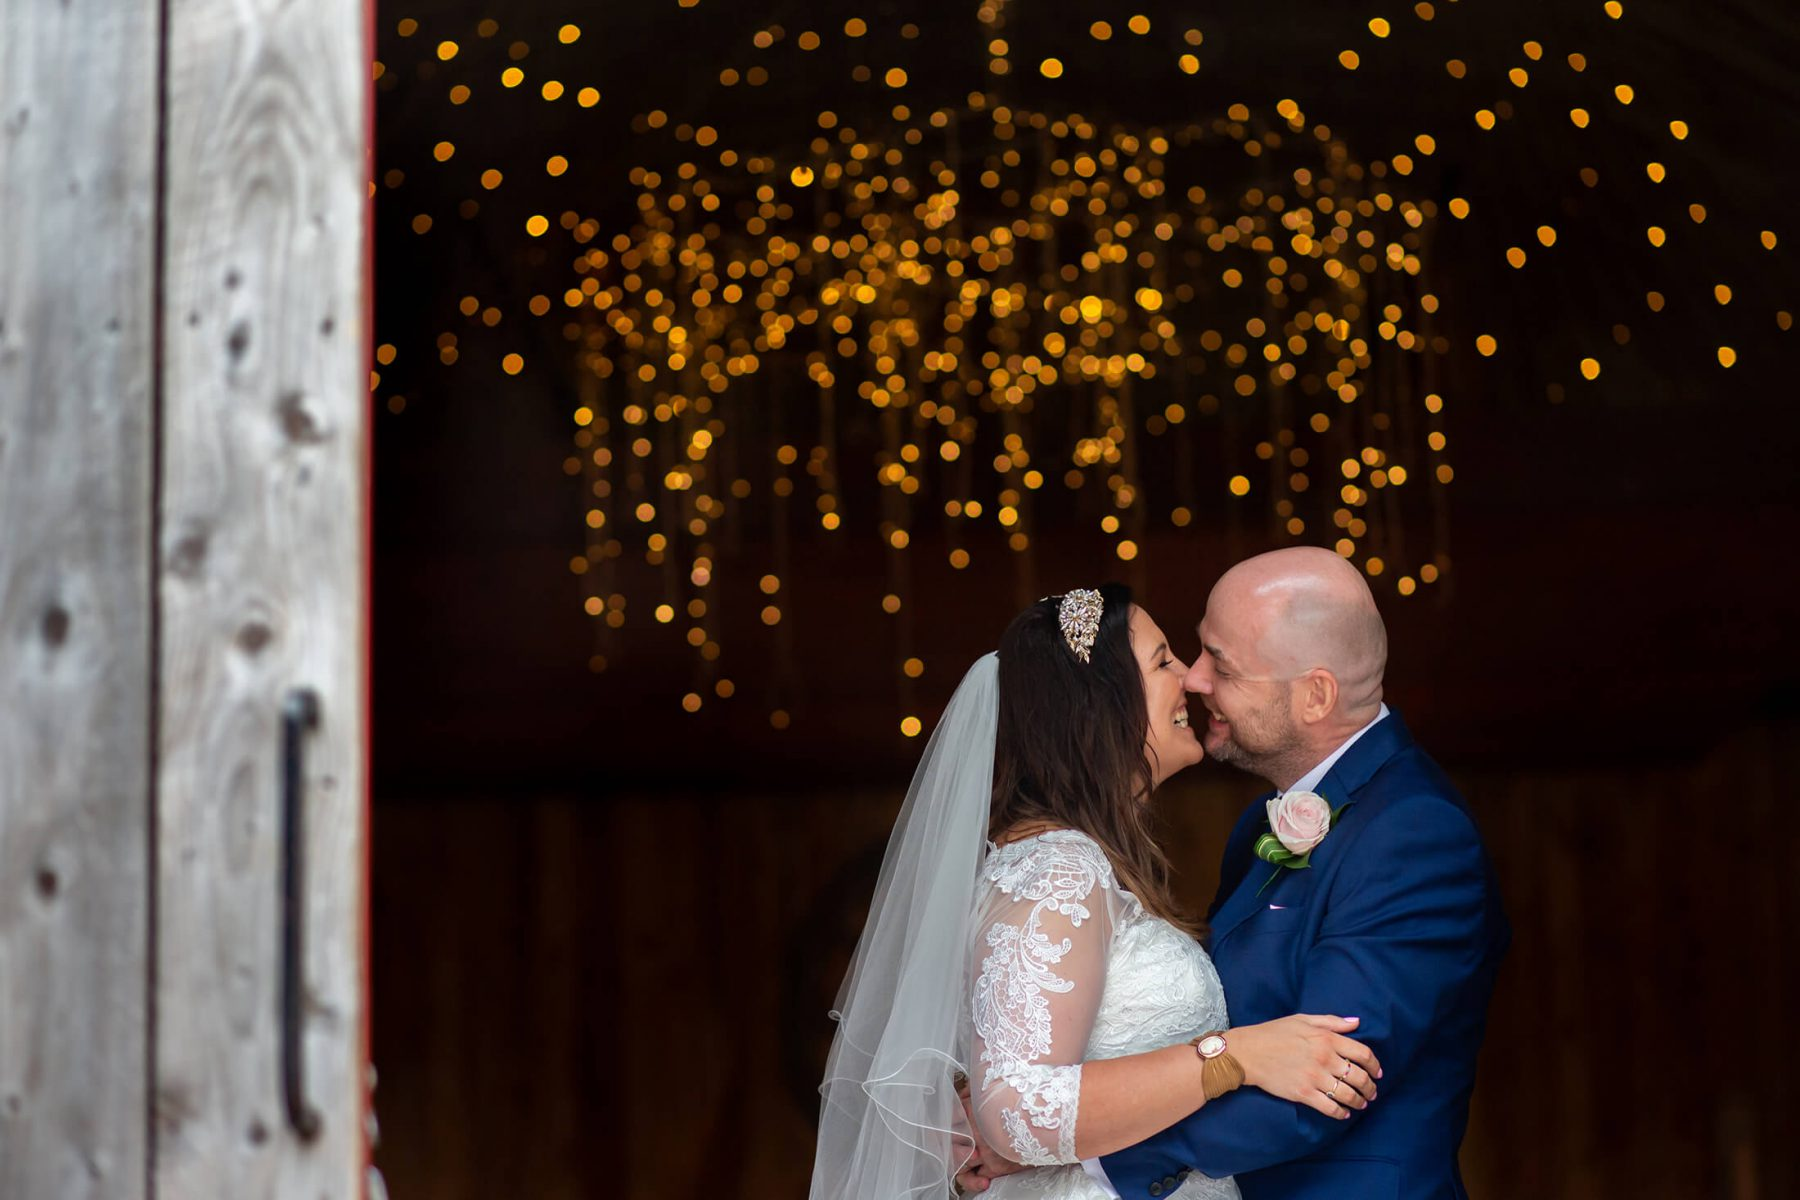 The bride and groom beneath fairy lights in the barn